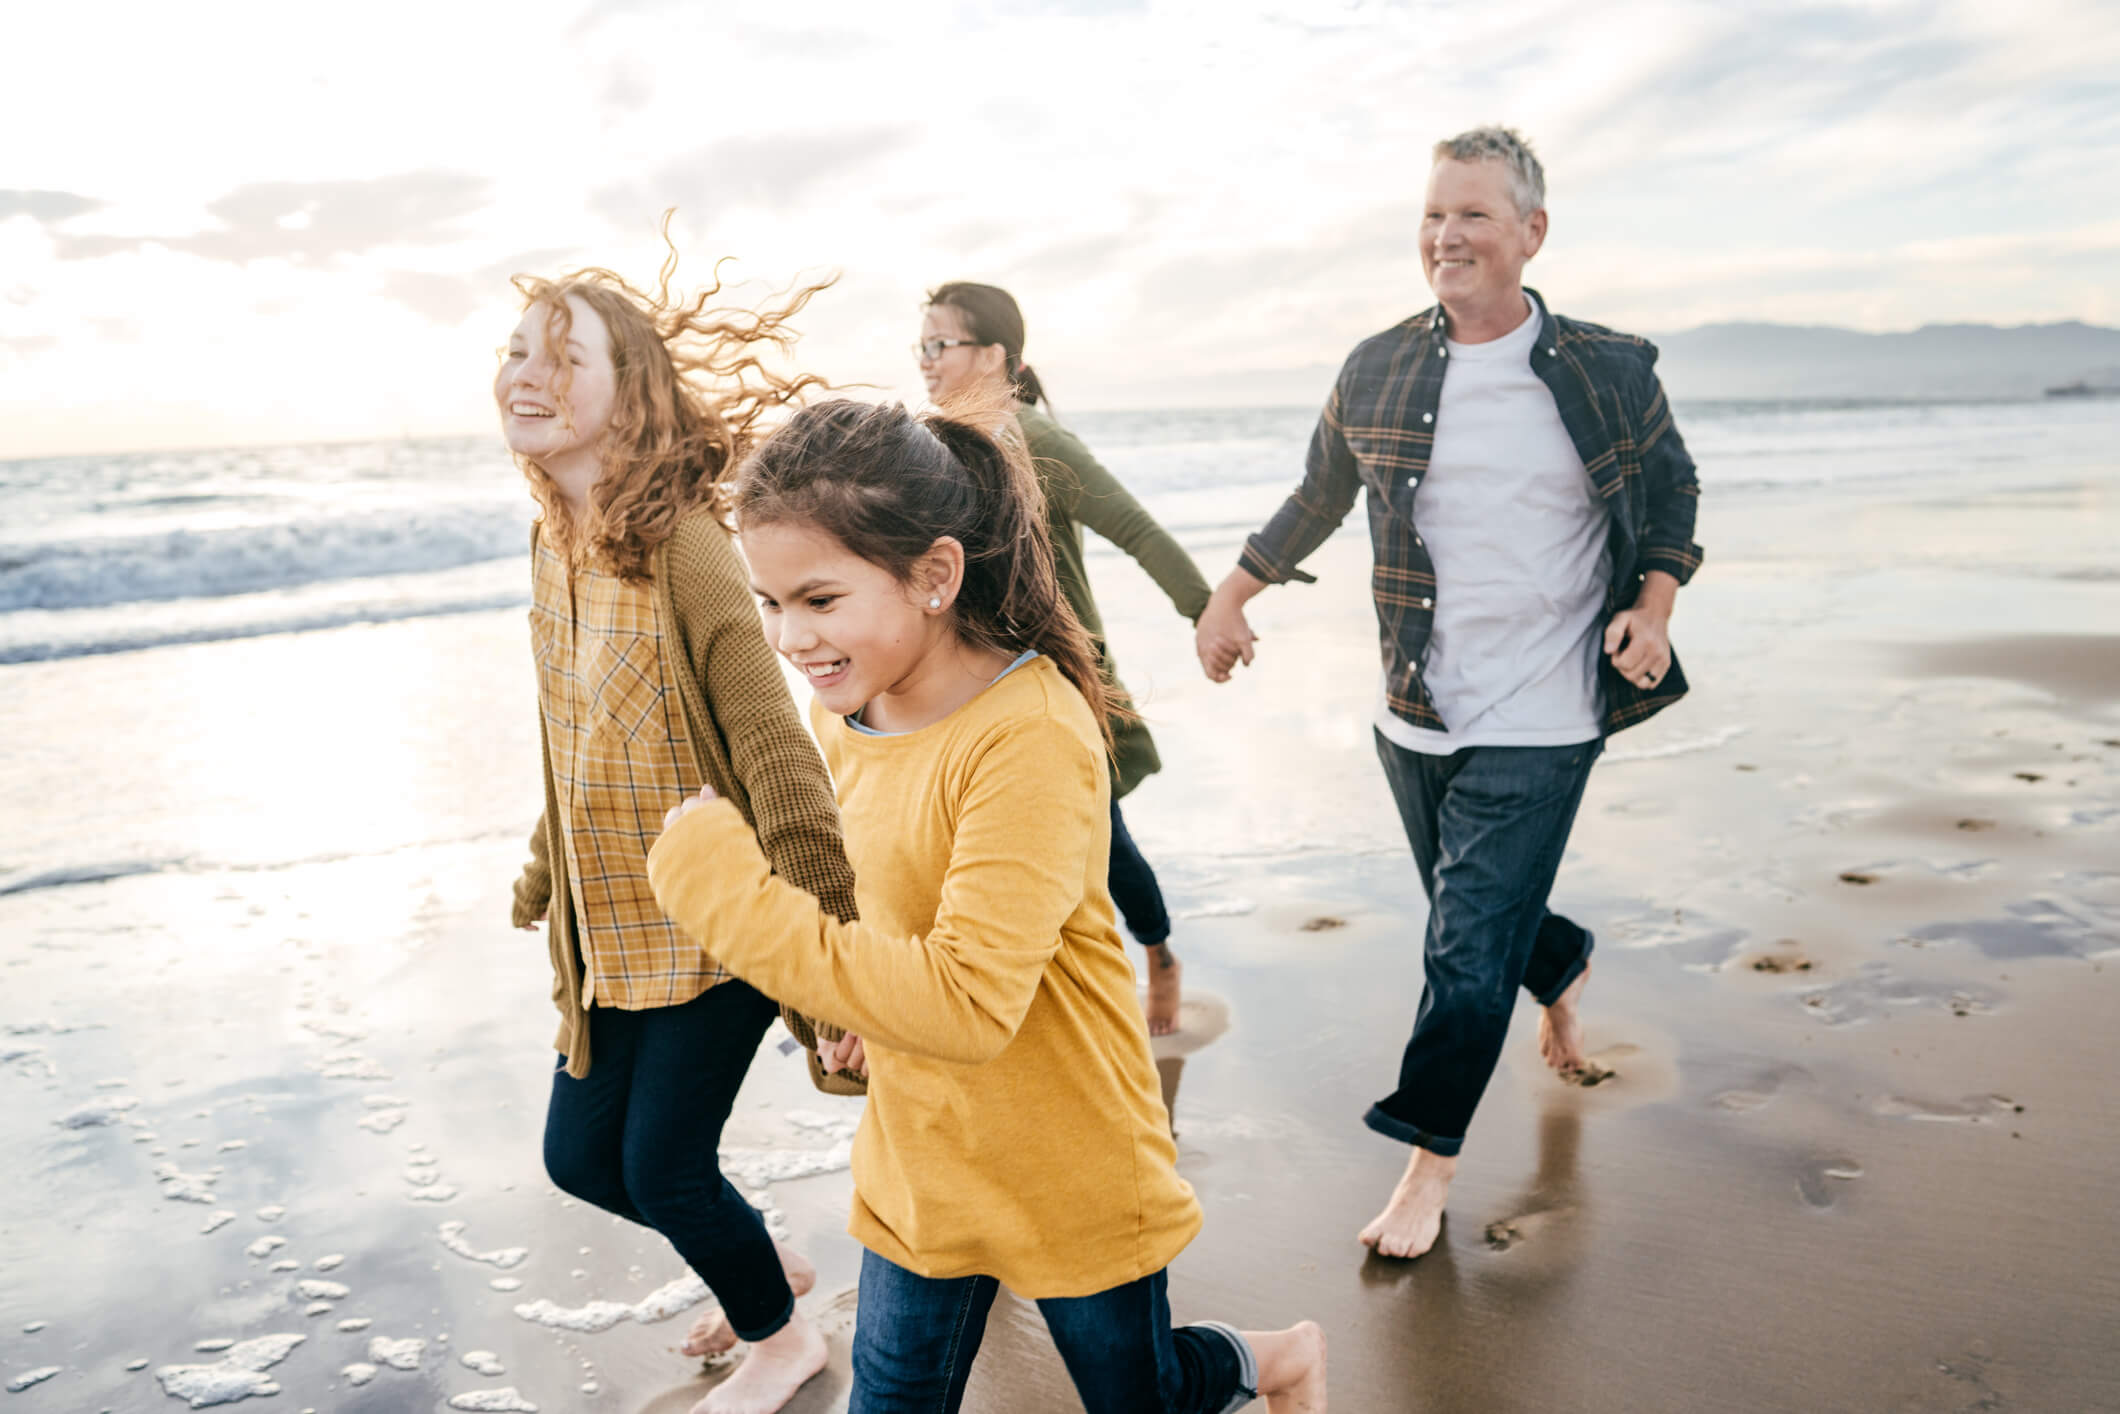 Family of four walking on the beach together